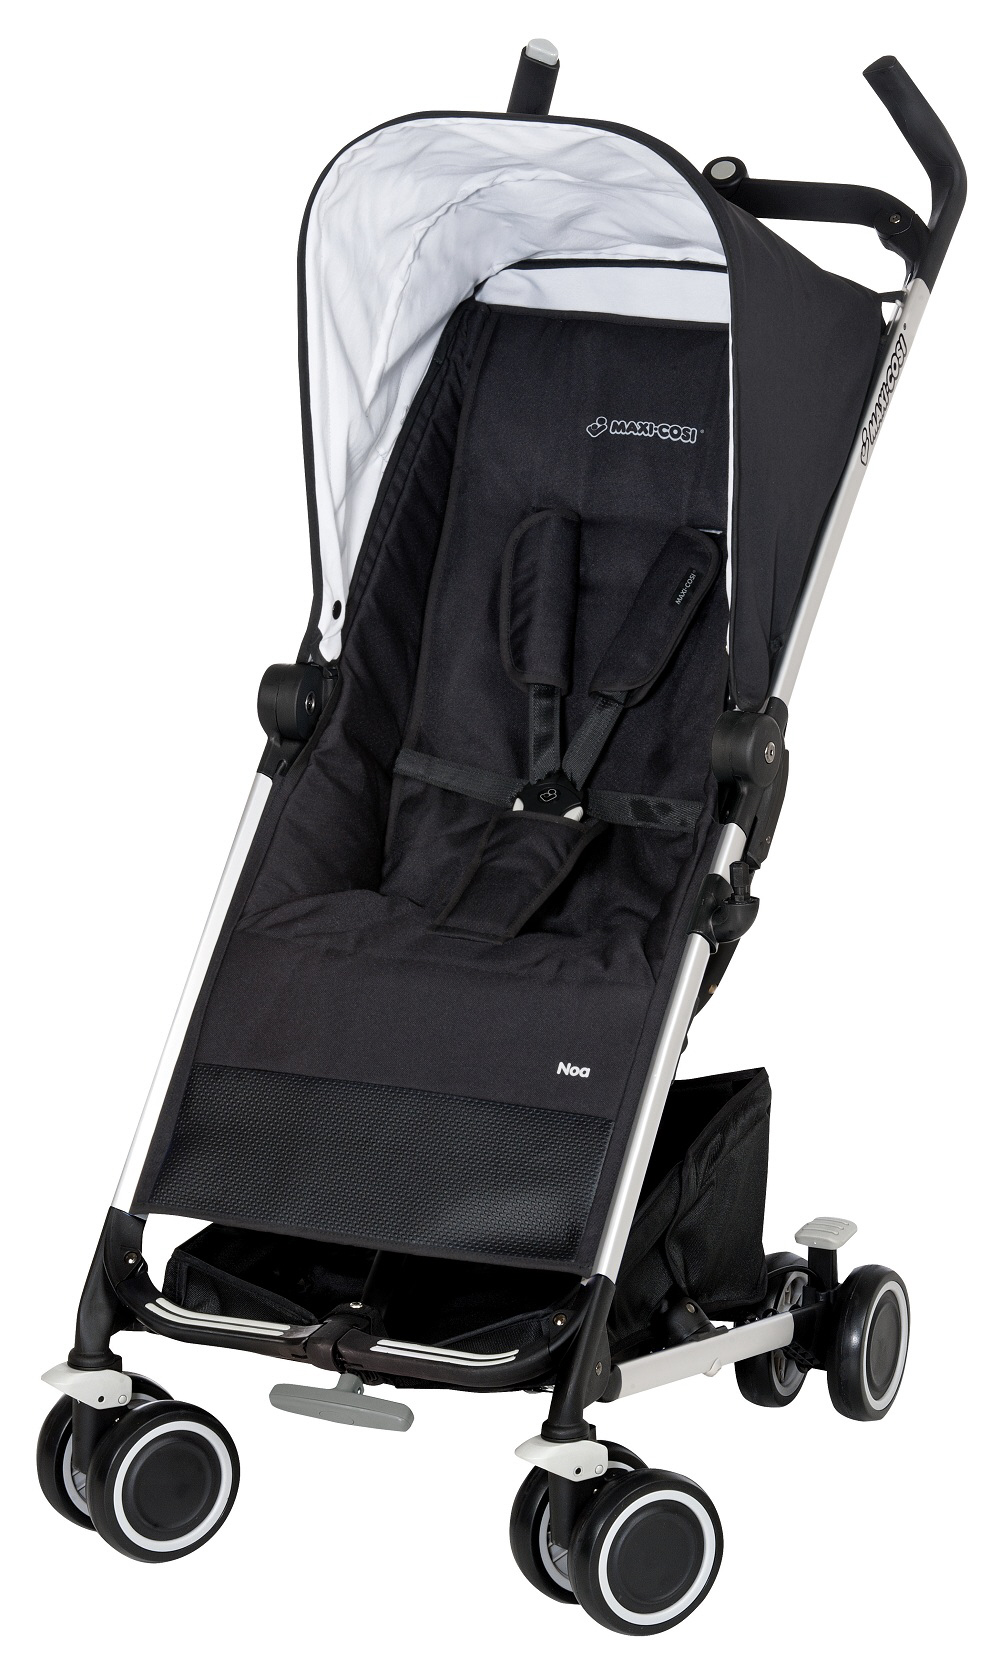 maxi cosi buggy noa buy at kidsroom strollers. Black Bedroom Furniture Sets. Home Design Ideas